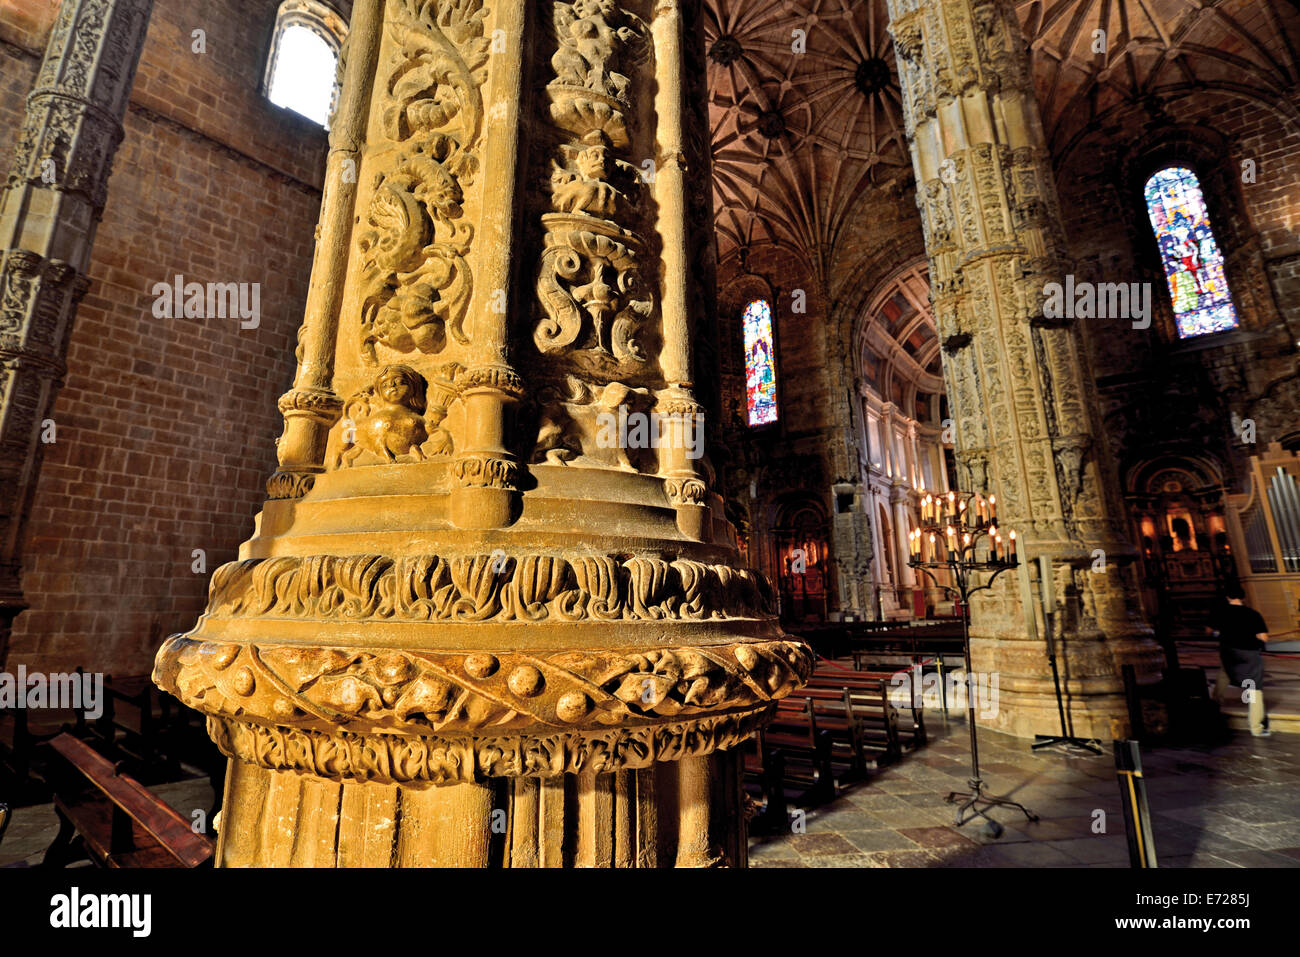 Portugal, Lisbon: Ornamented pillar in the church Santa Maria of the Hieronymus´s Monastery in Belém - Stock Image